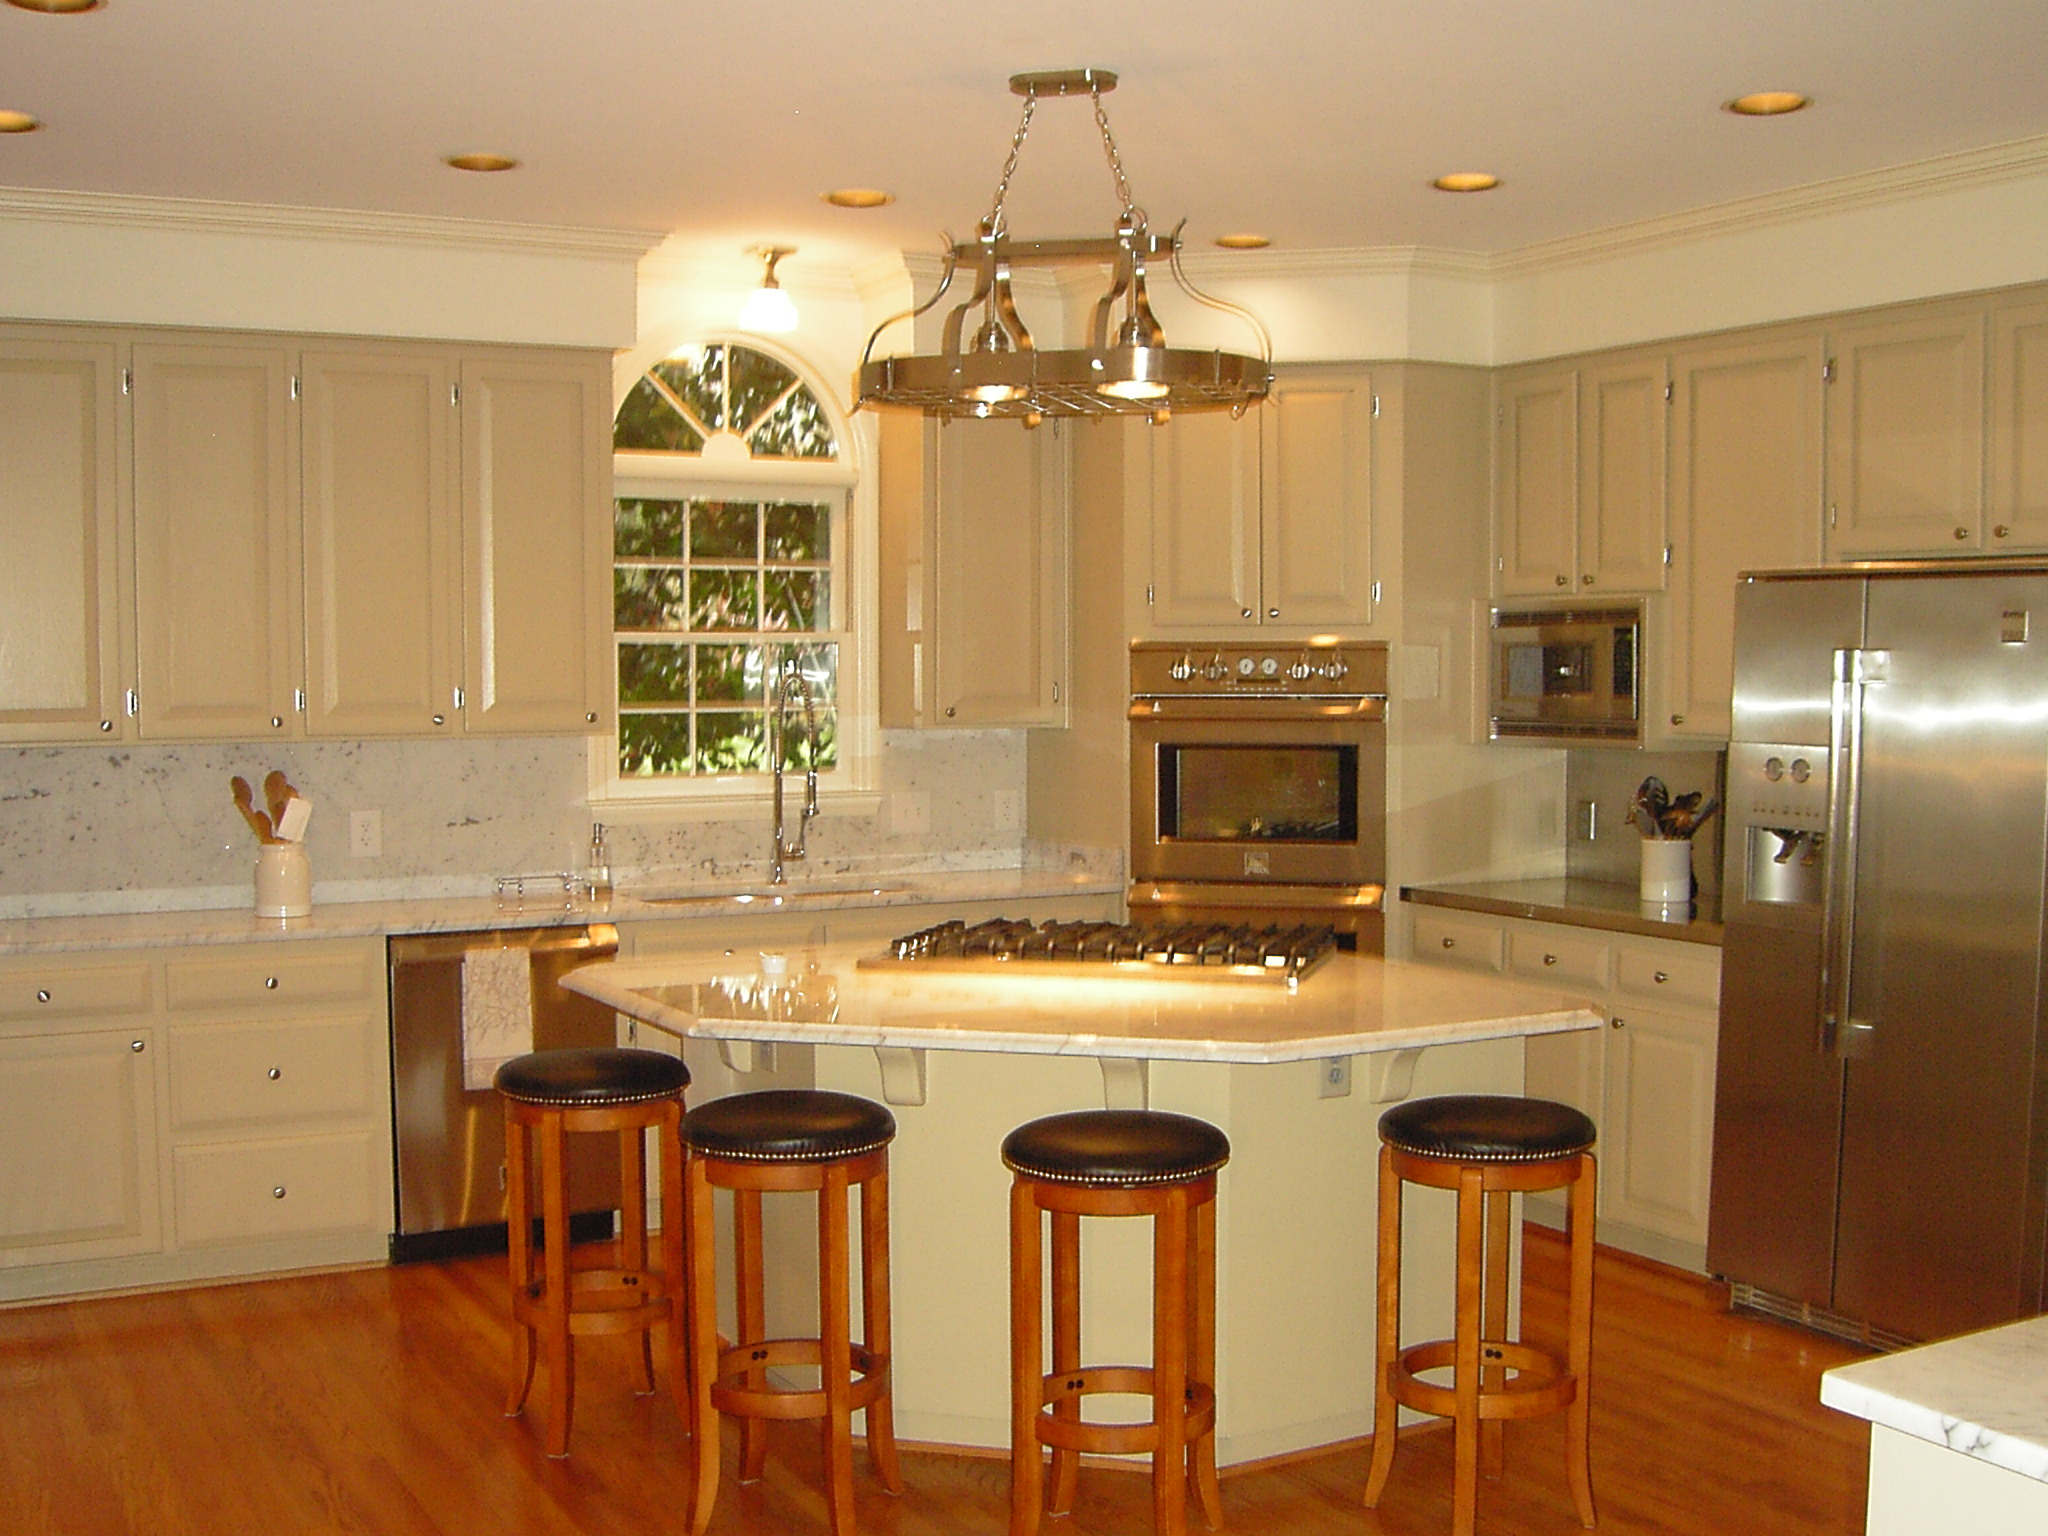 Http Pinstake Com Kitchen Cabinets Raleigh Nc Used Kitchen Cabinets For Sale In Ralei